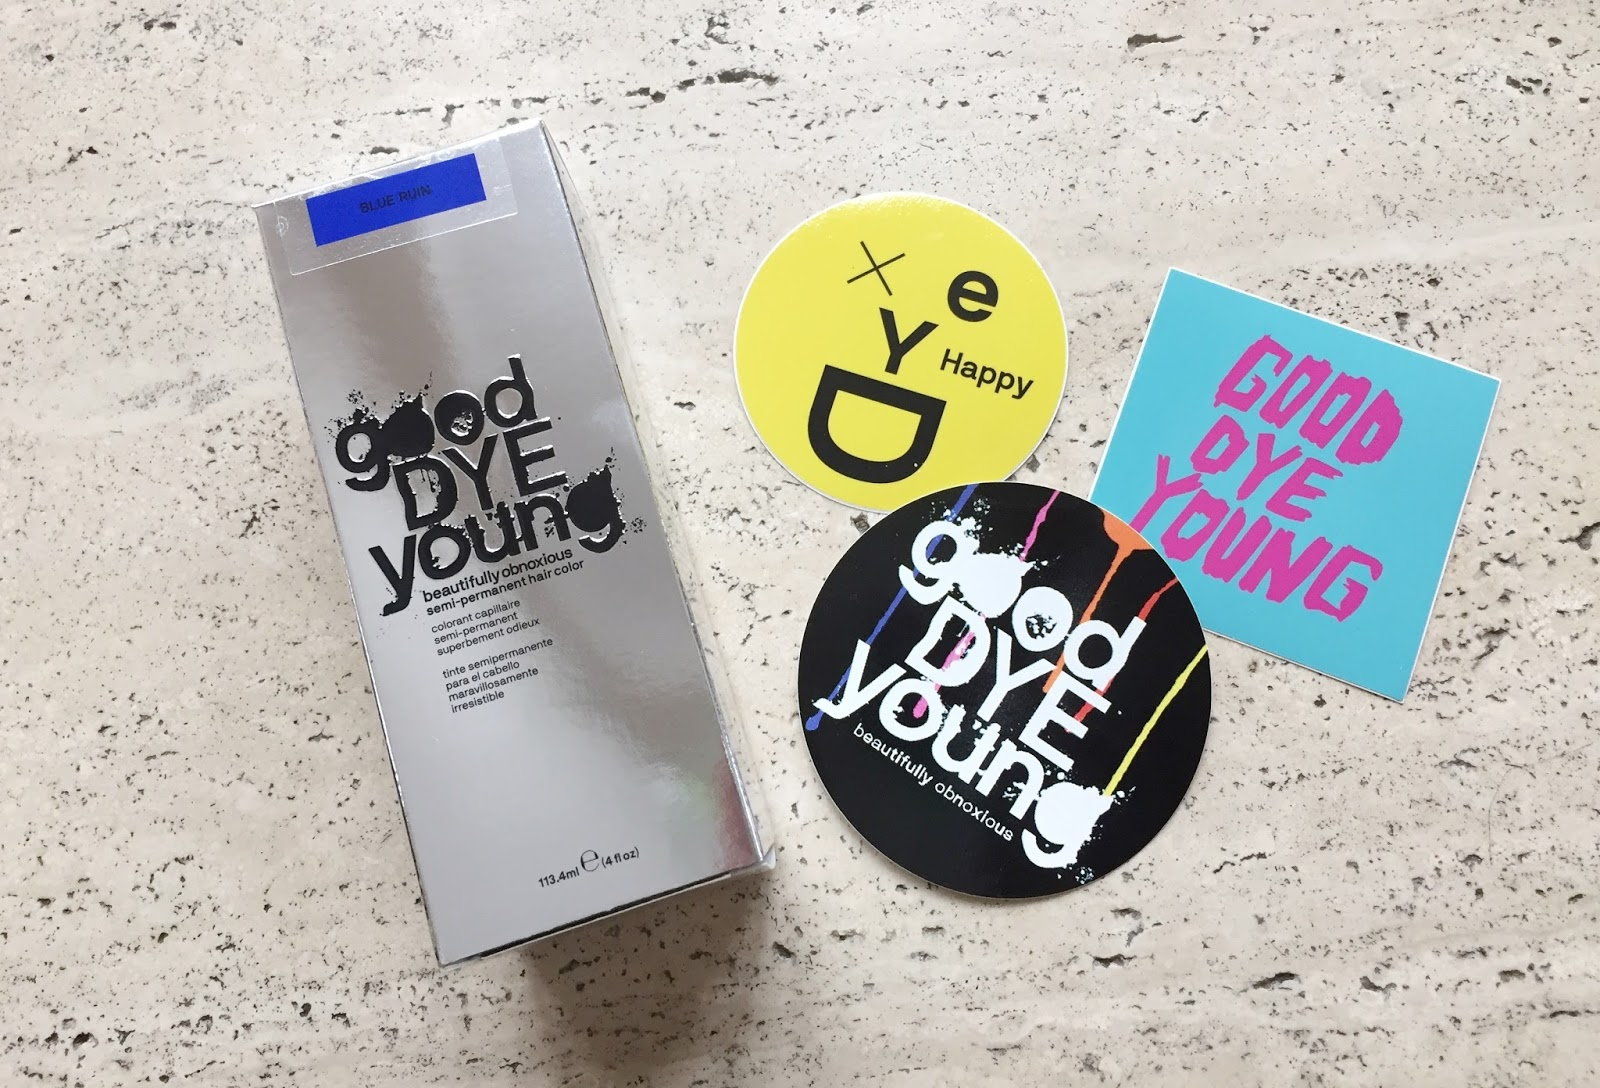 Review Gooddyeyoung Hair Color Updated Poppyseeder Beauty